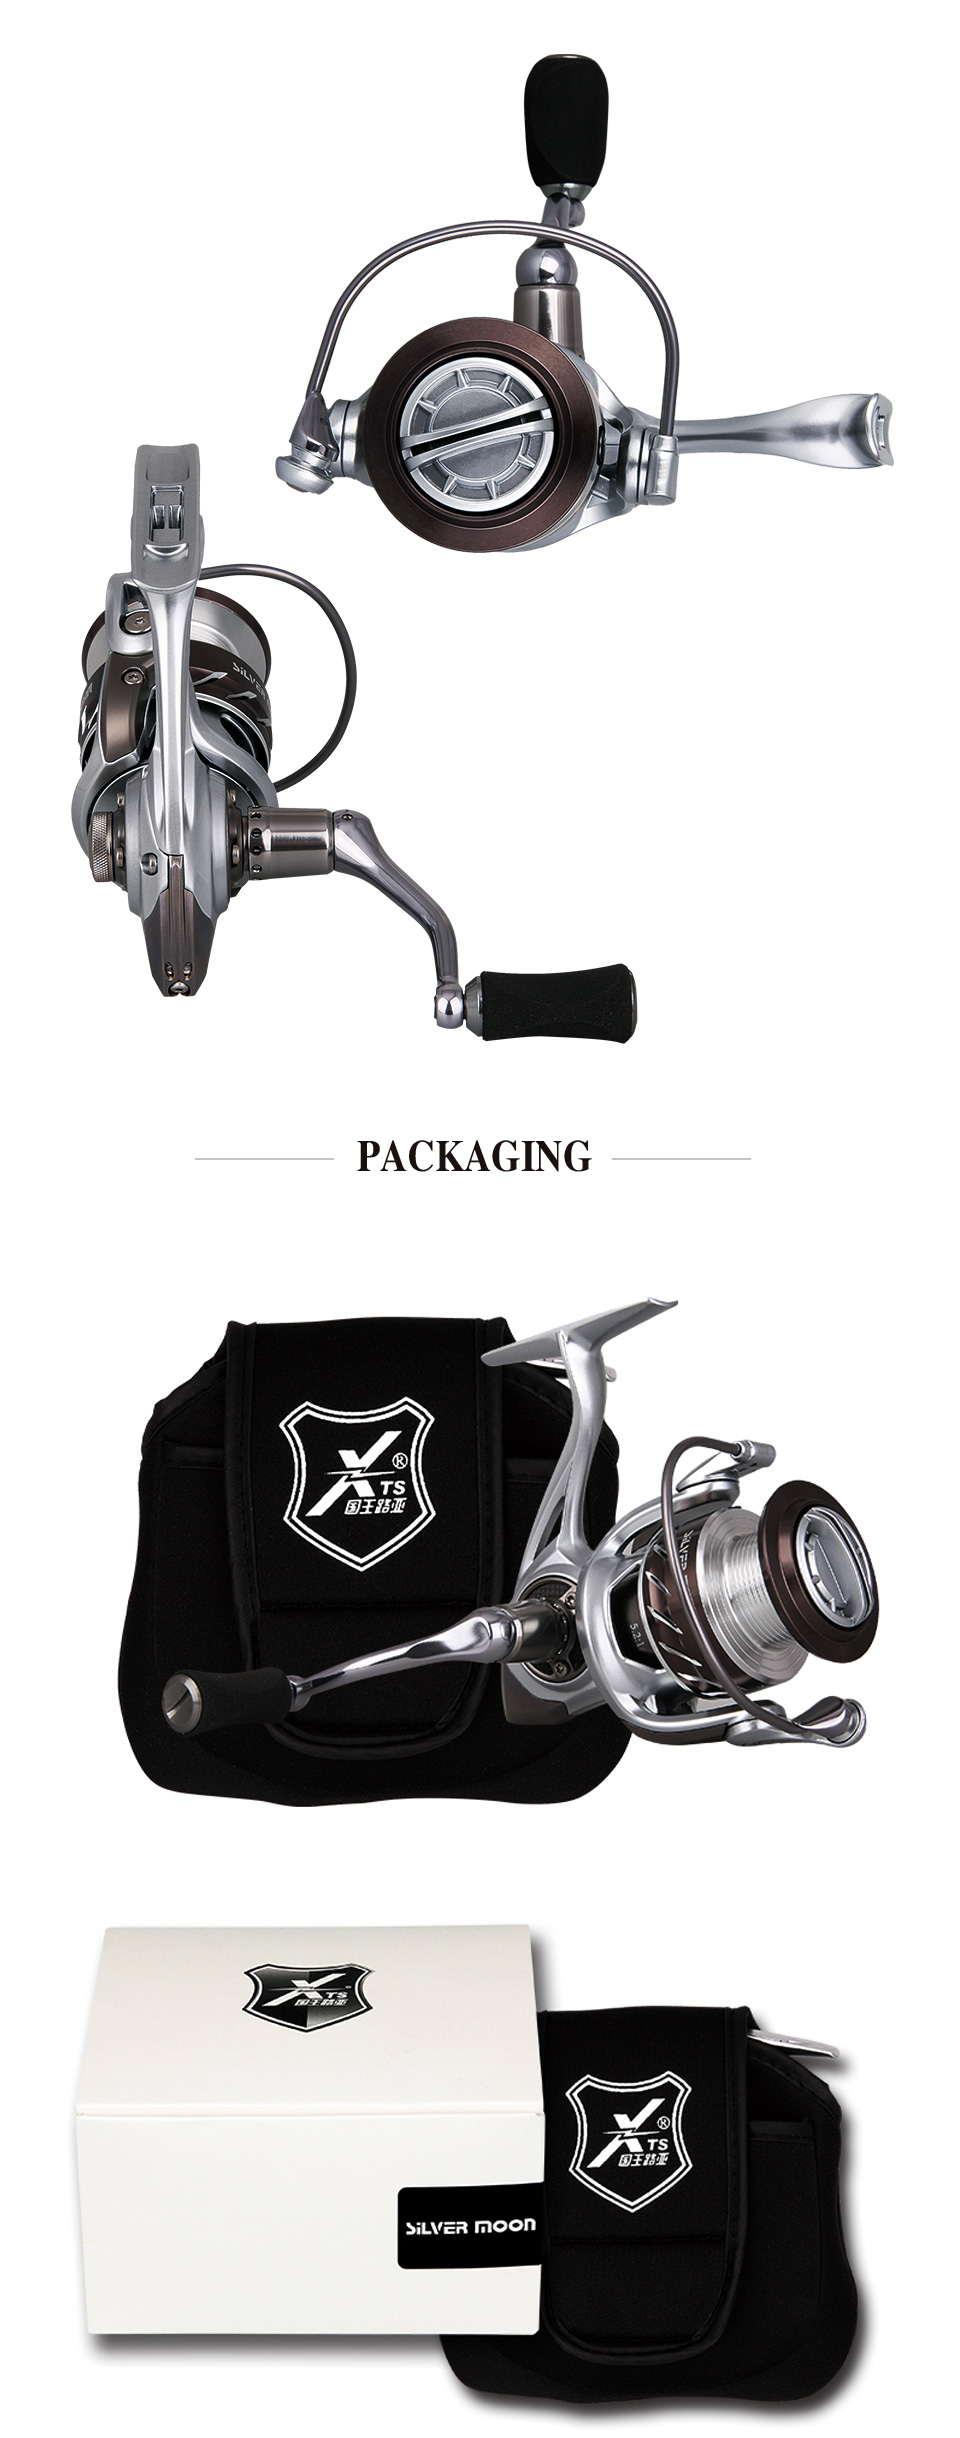 Kingdom Carbon Fiber Bait Casting Fishing Reel 10+1BB 5.21 226g 295g High Speed Fishing Reels Spinning Saltwater (2)